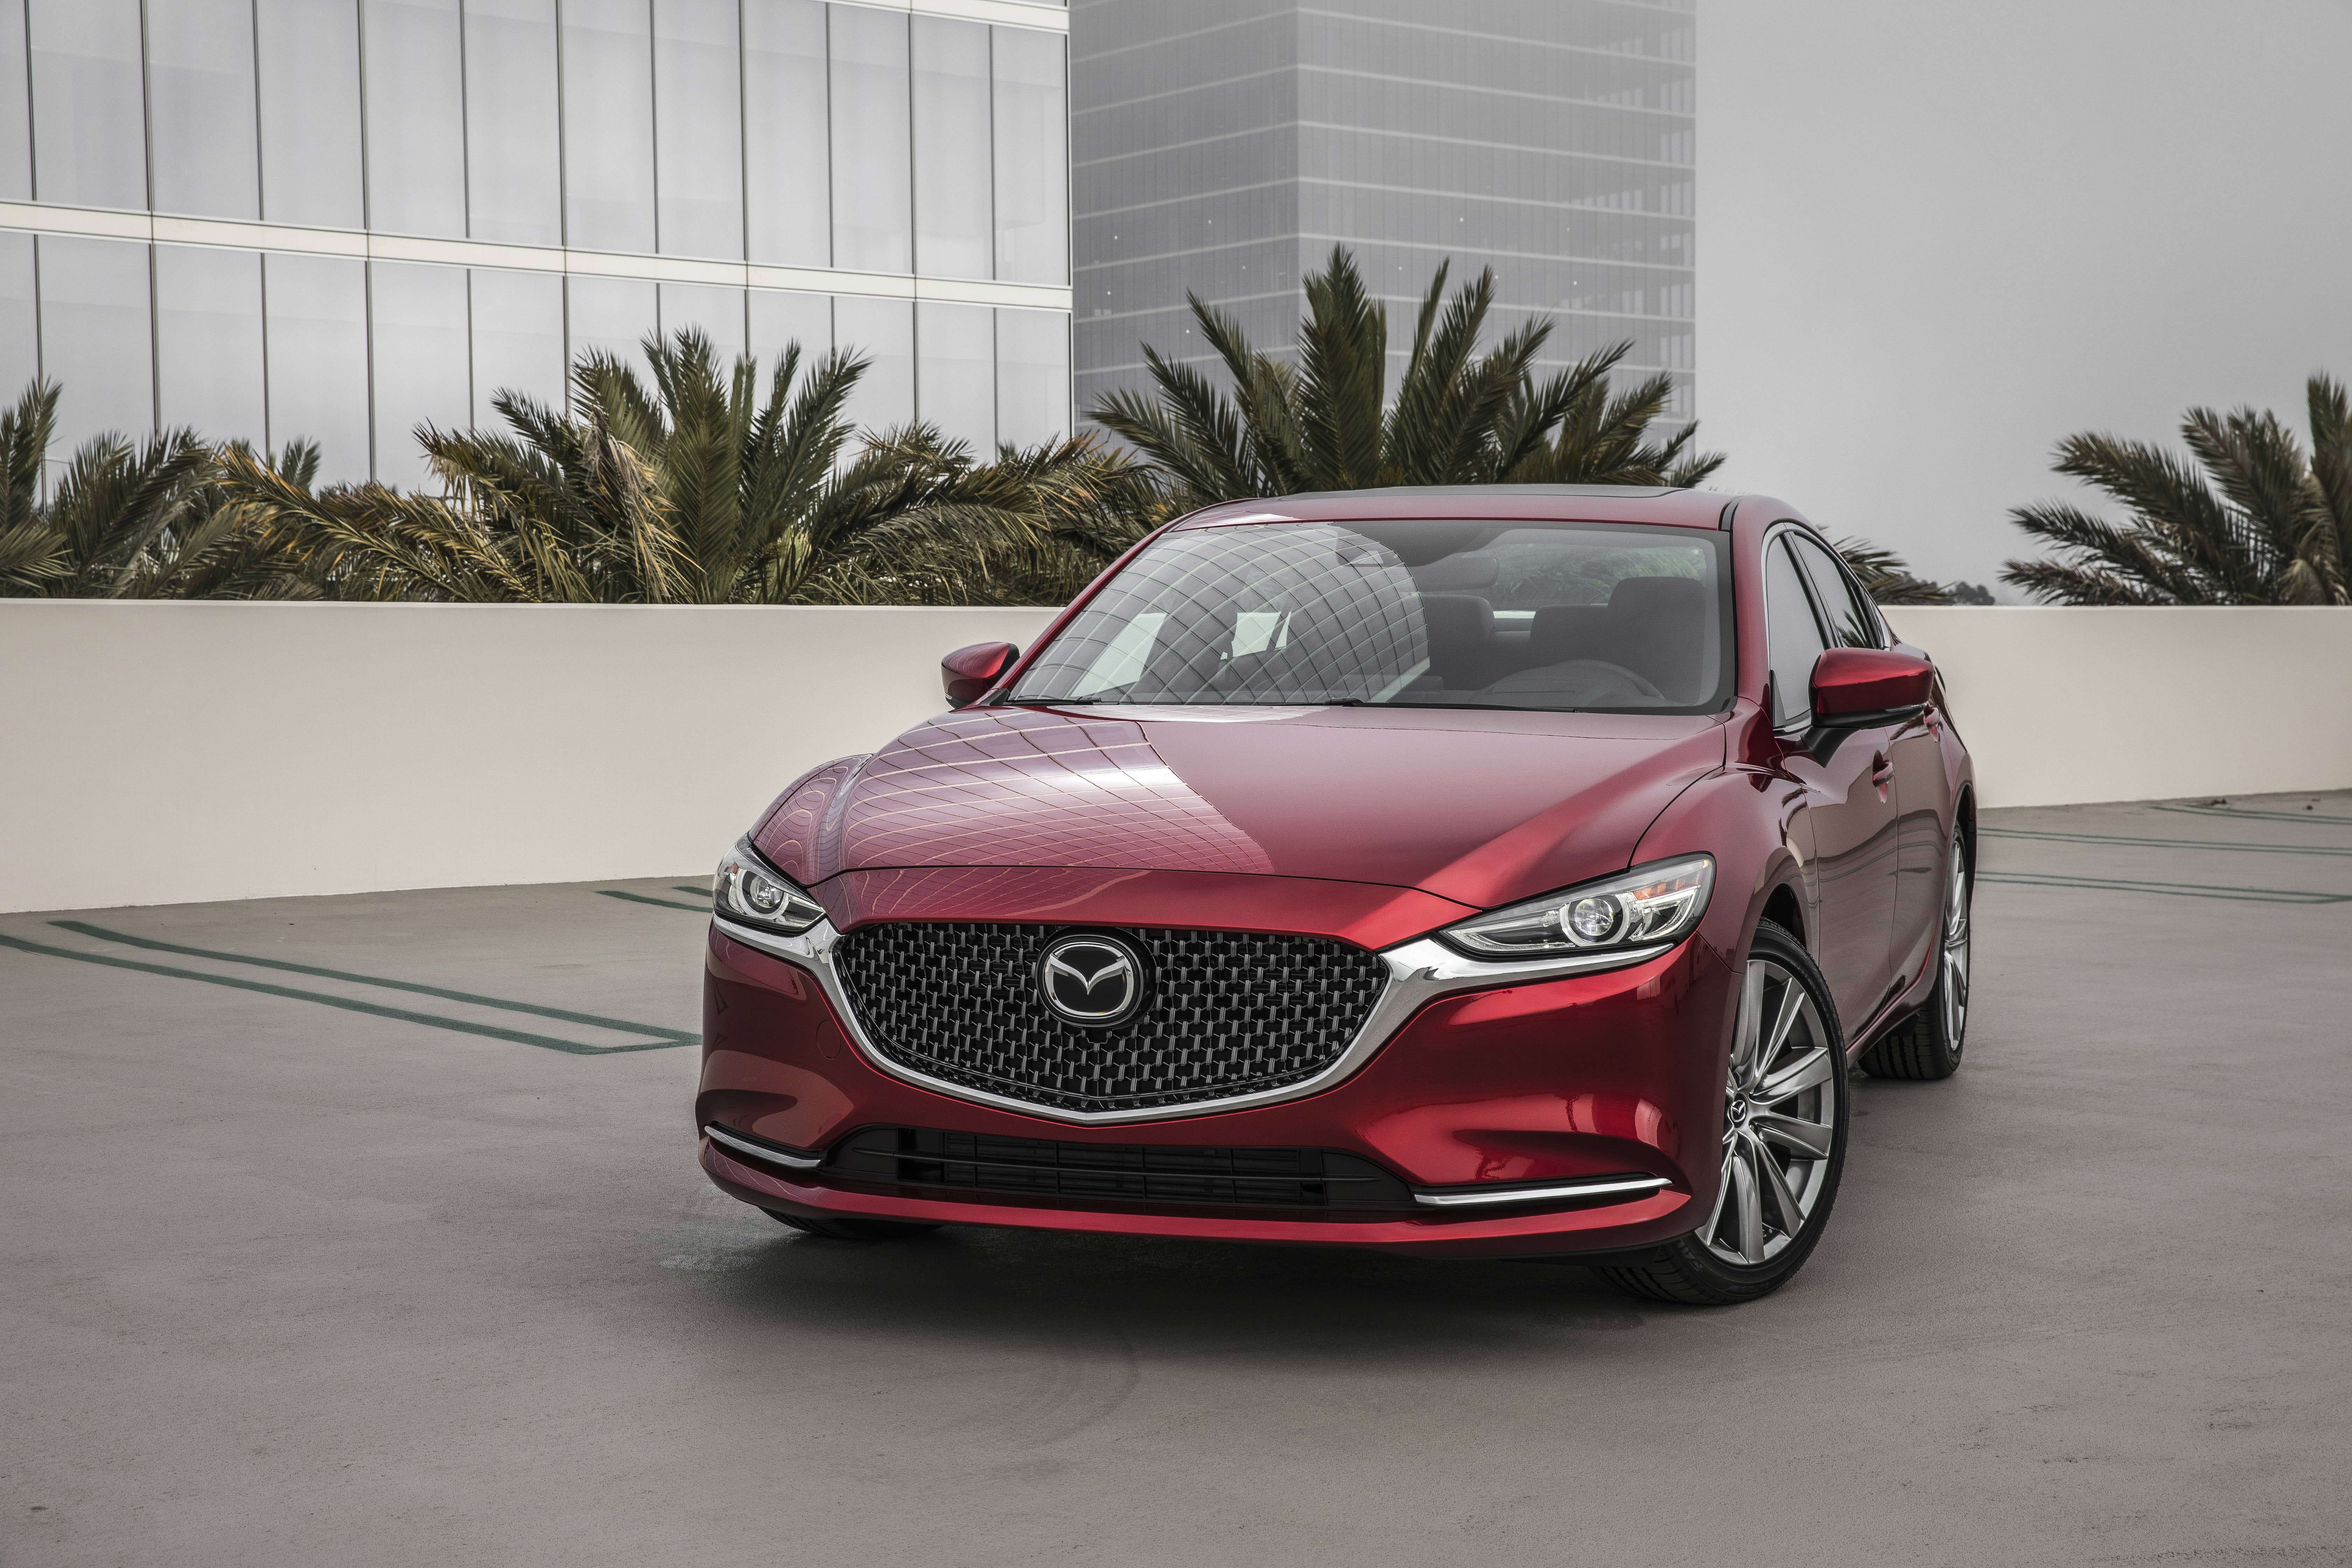 What Sets the 2018 Mazda 6 Apart